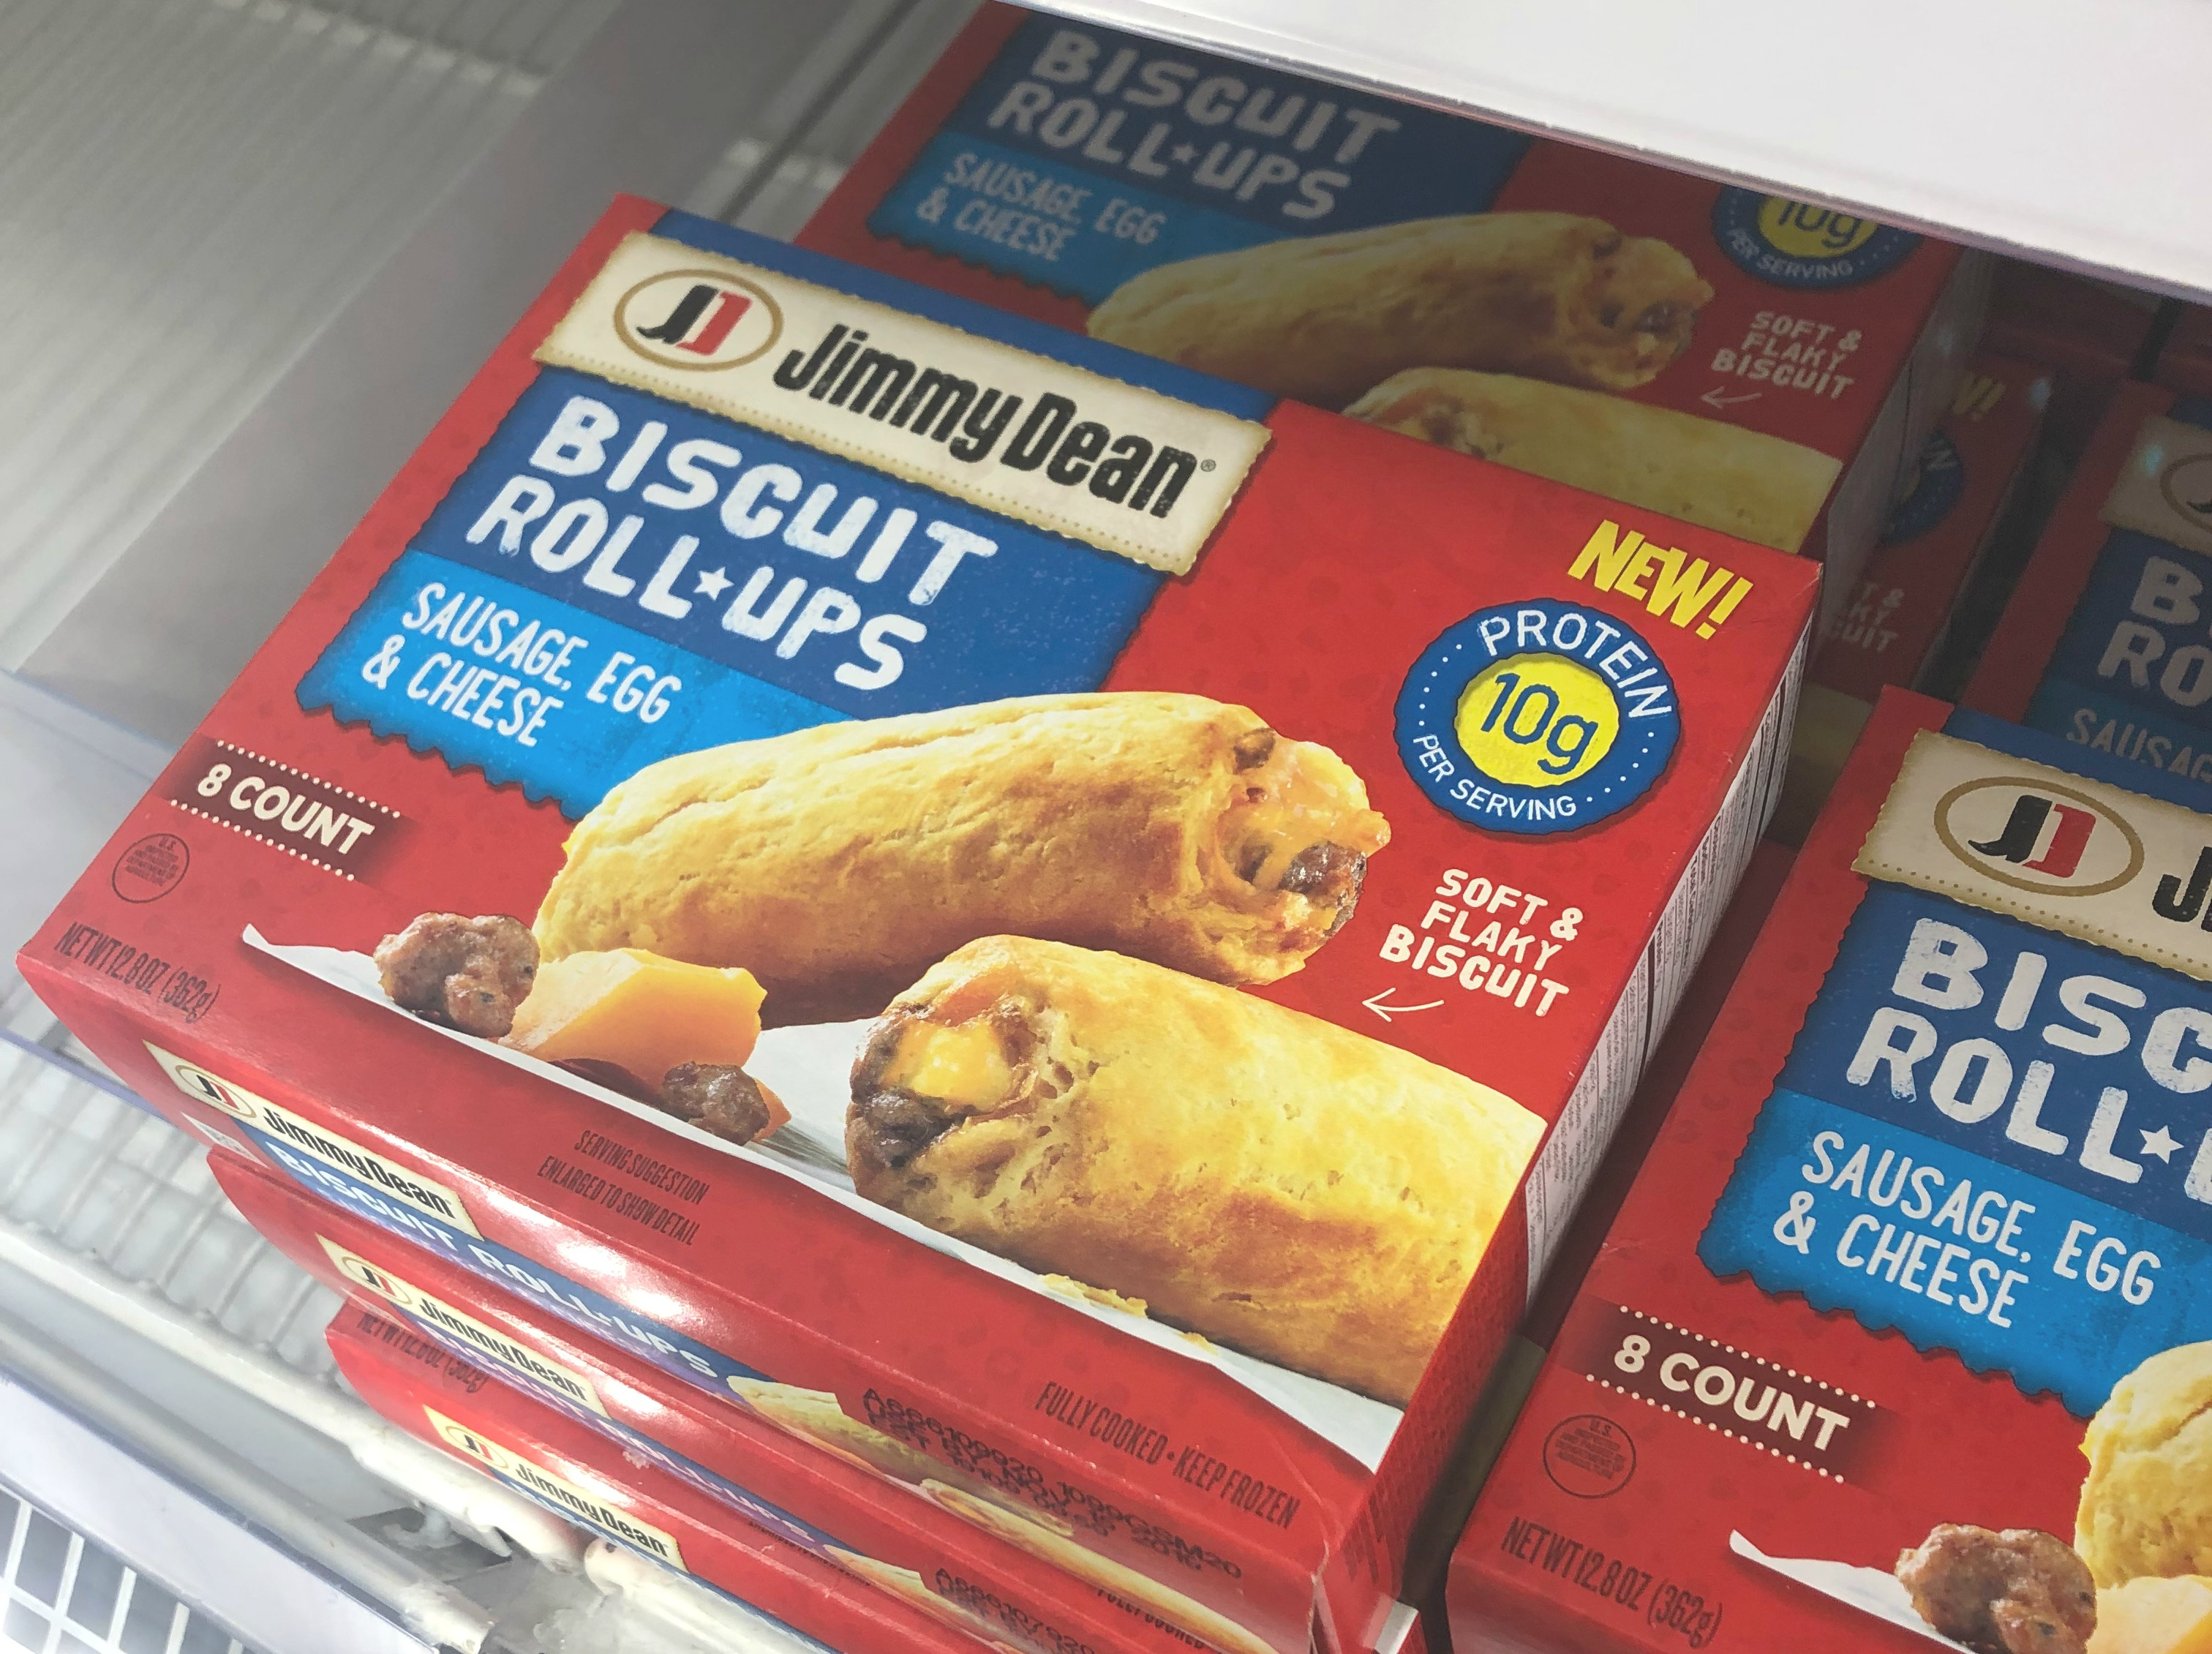 jeimmy dean biscuit roll-ups in target freezer